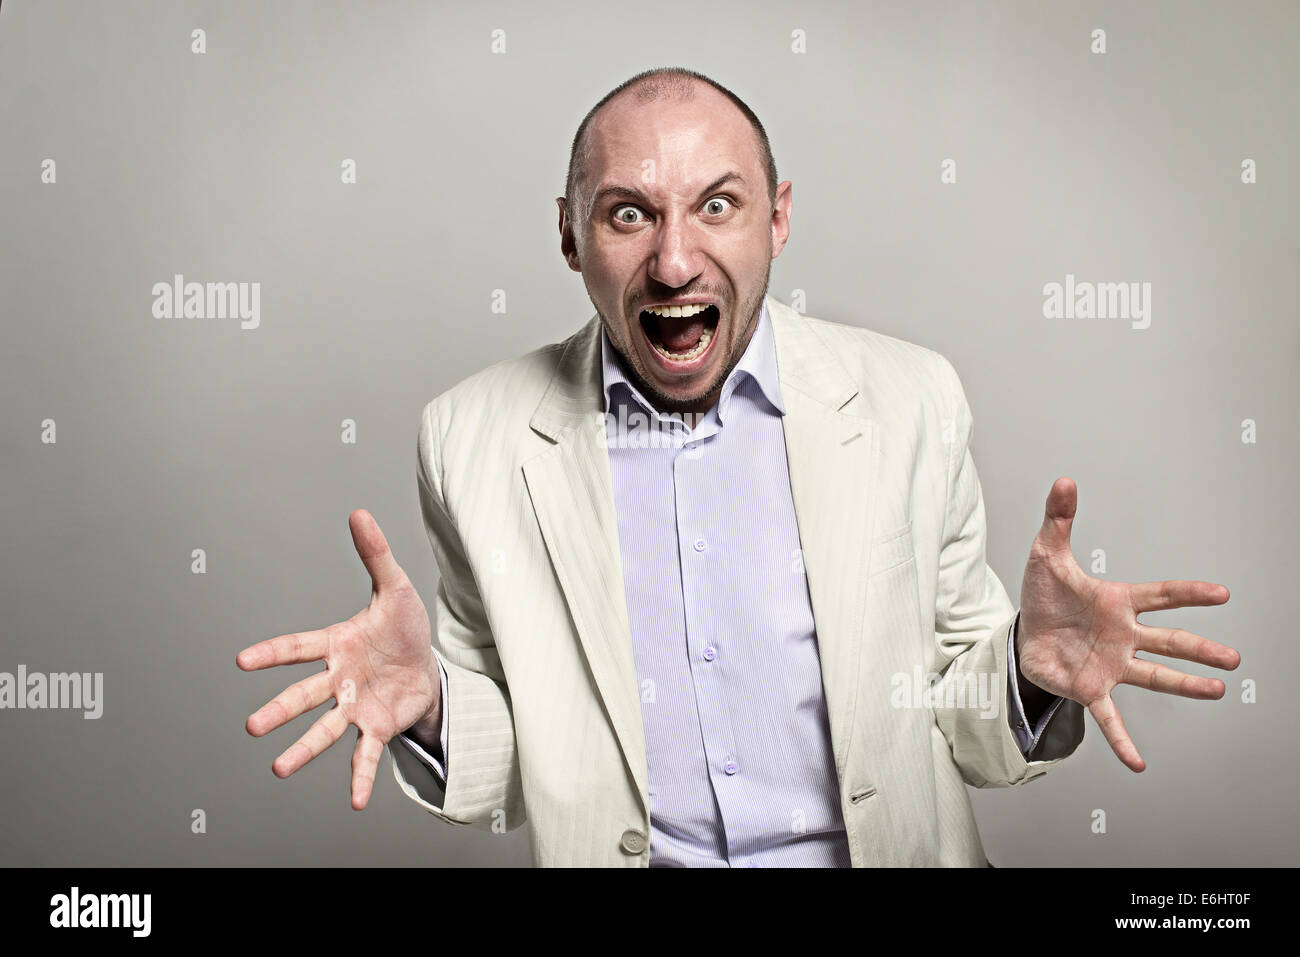 Angry boss shout loudly - Stock Image